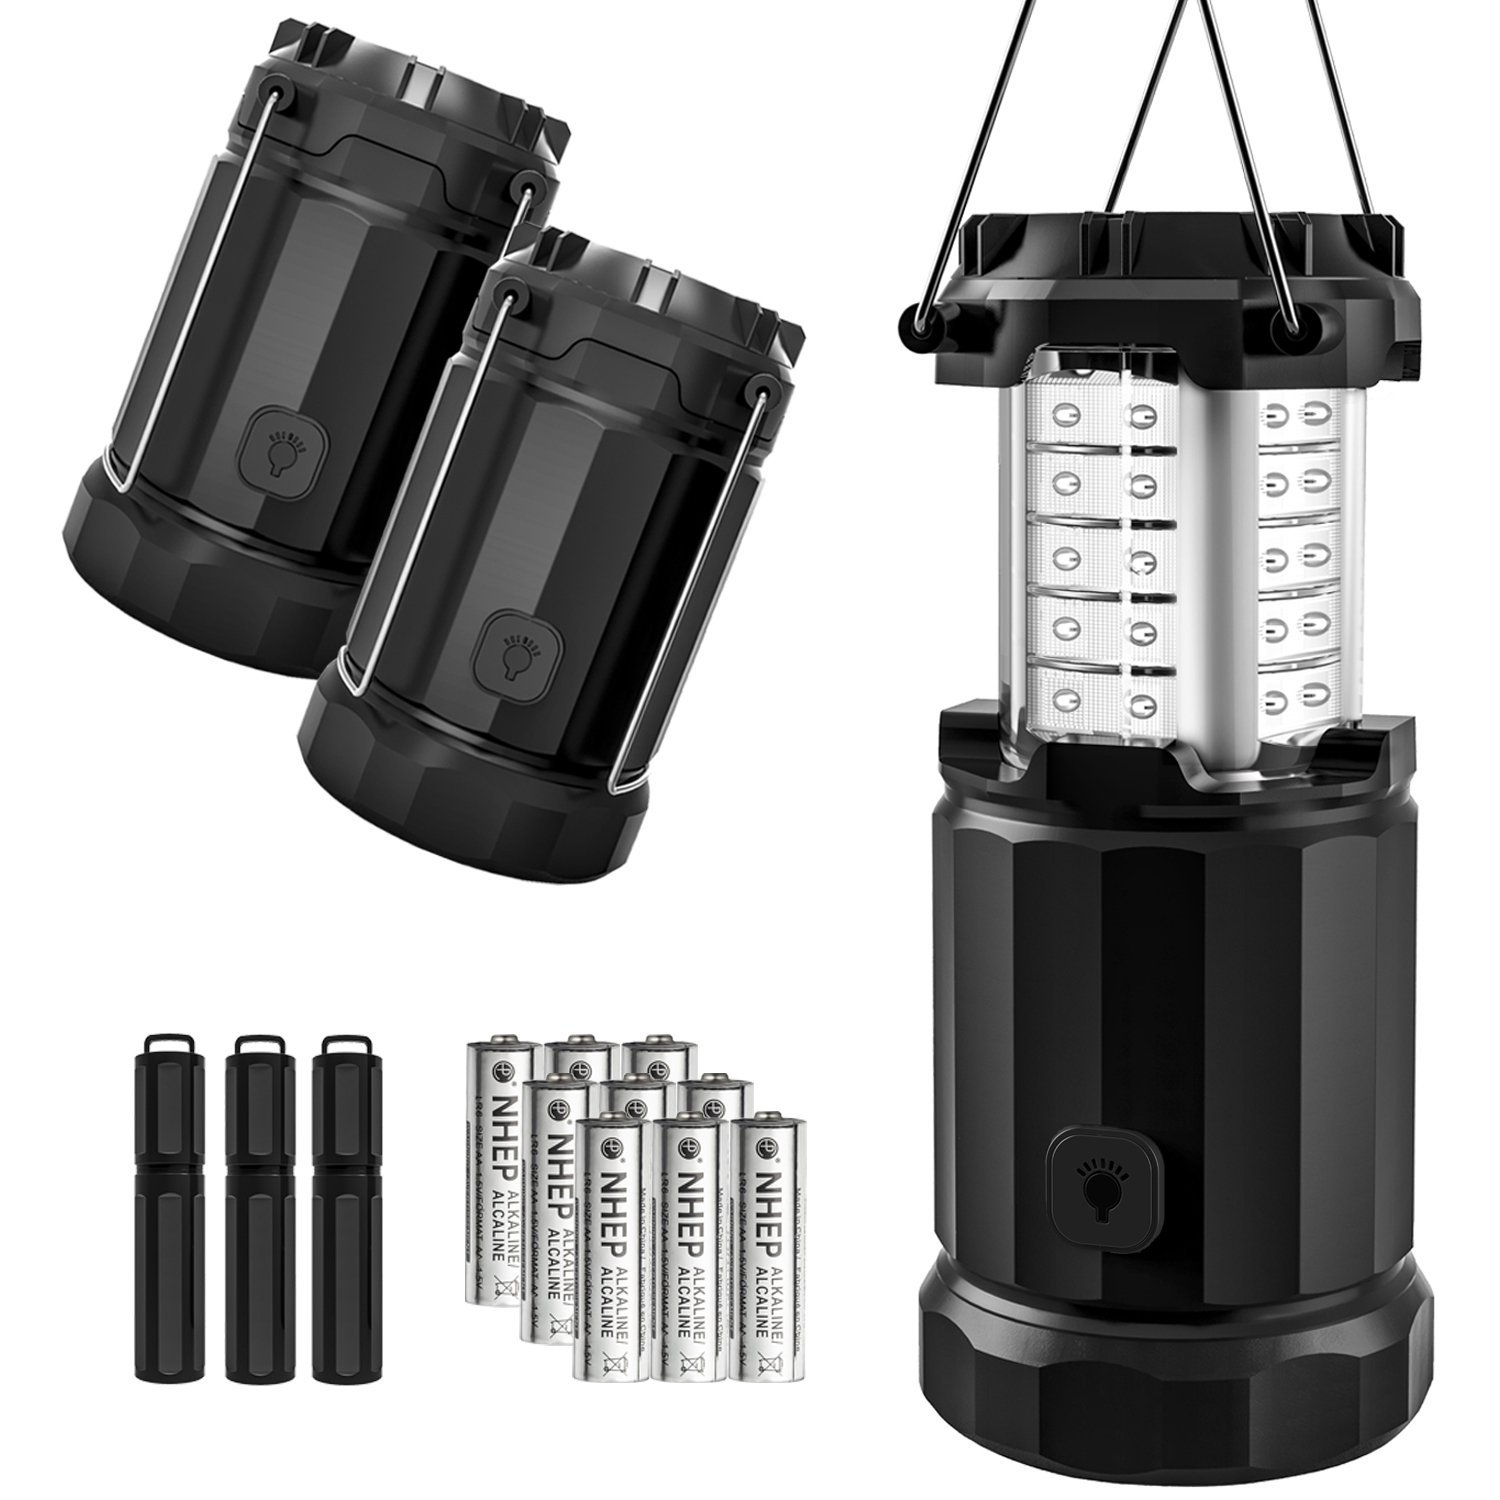 Etekcity 3 Pack LED Lantern Camping Magnetic Lights Dimmer Button Brightness Control with Batteries, Camping Gear for Hiking, Power Outage, Fishing, Storm (Collapsible, Upgraded CL30)